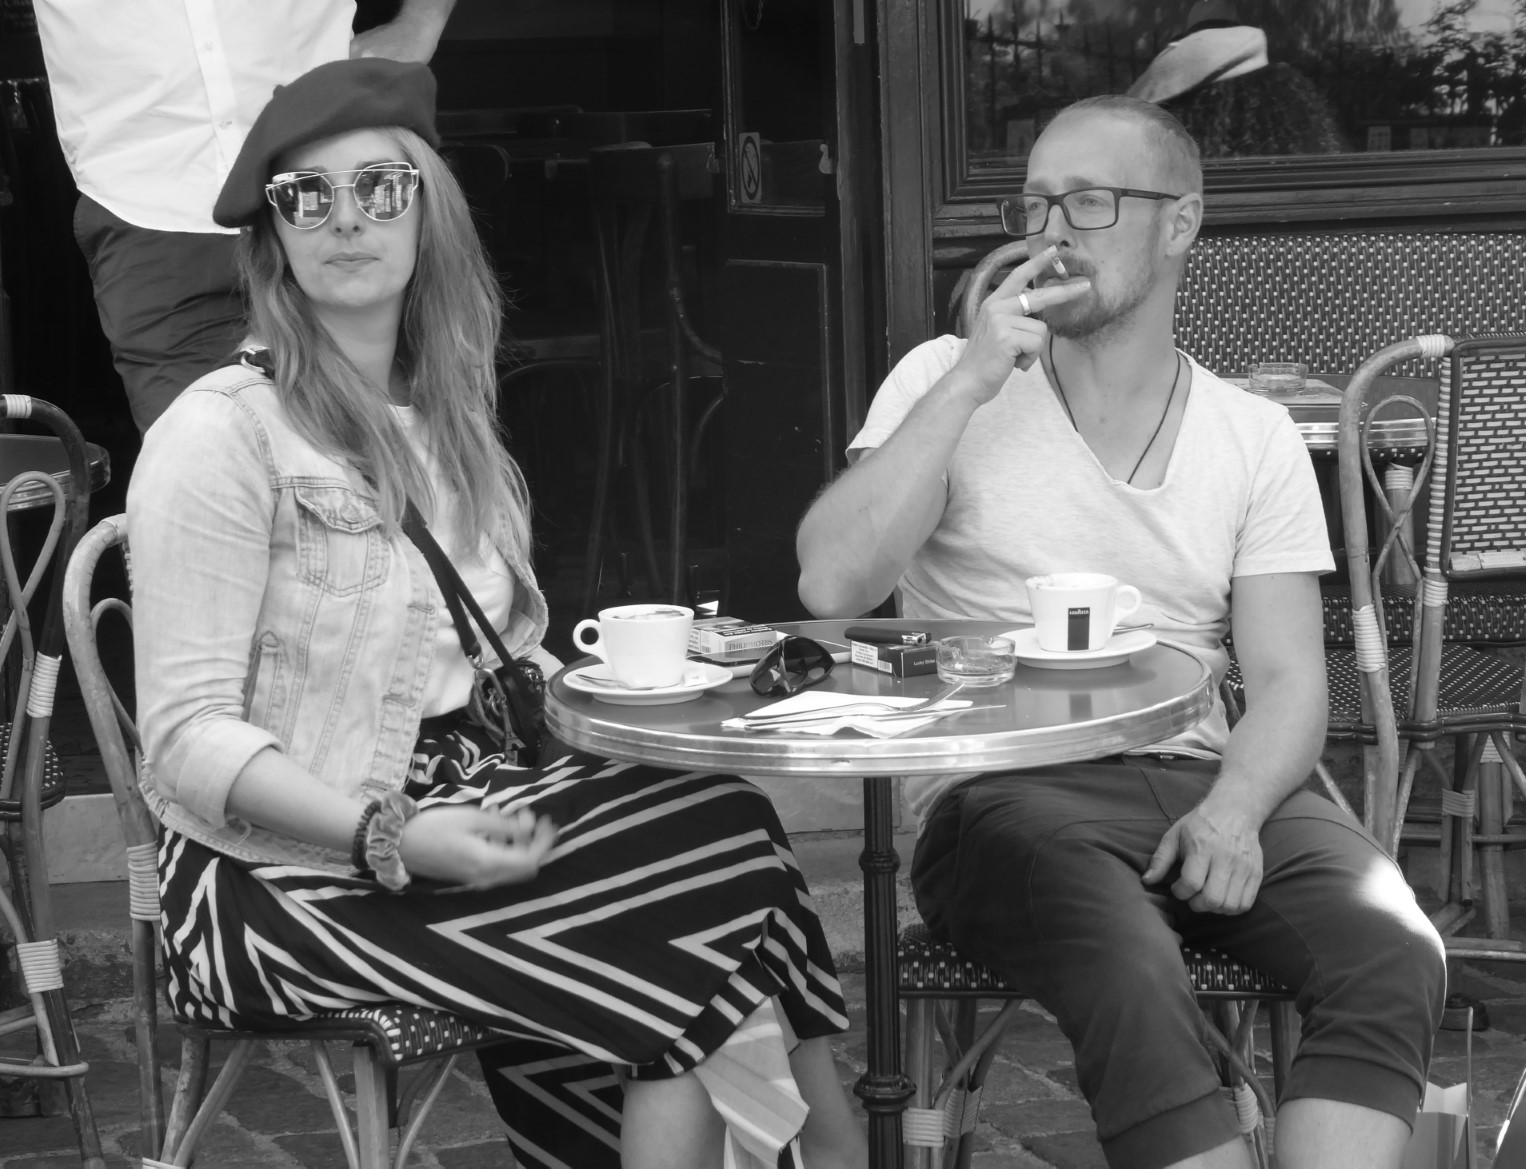 Black and white photo of a couple in a cafe